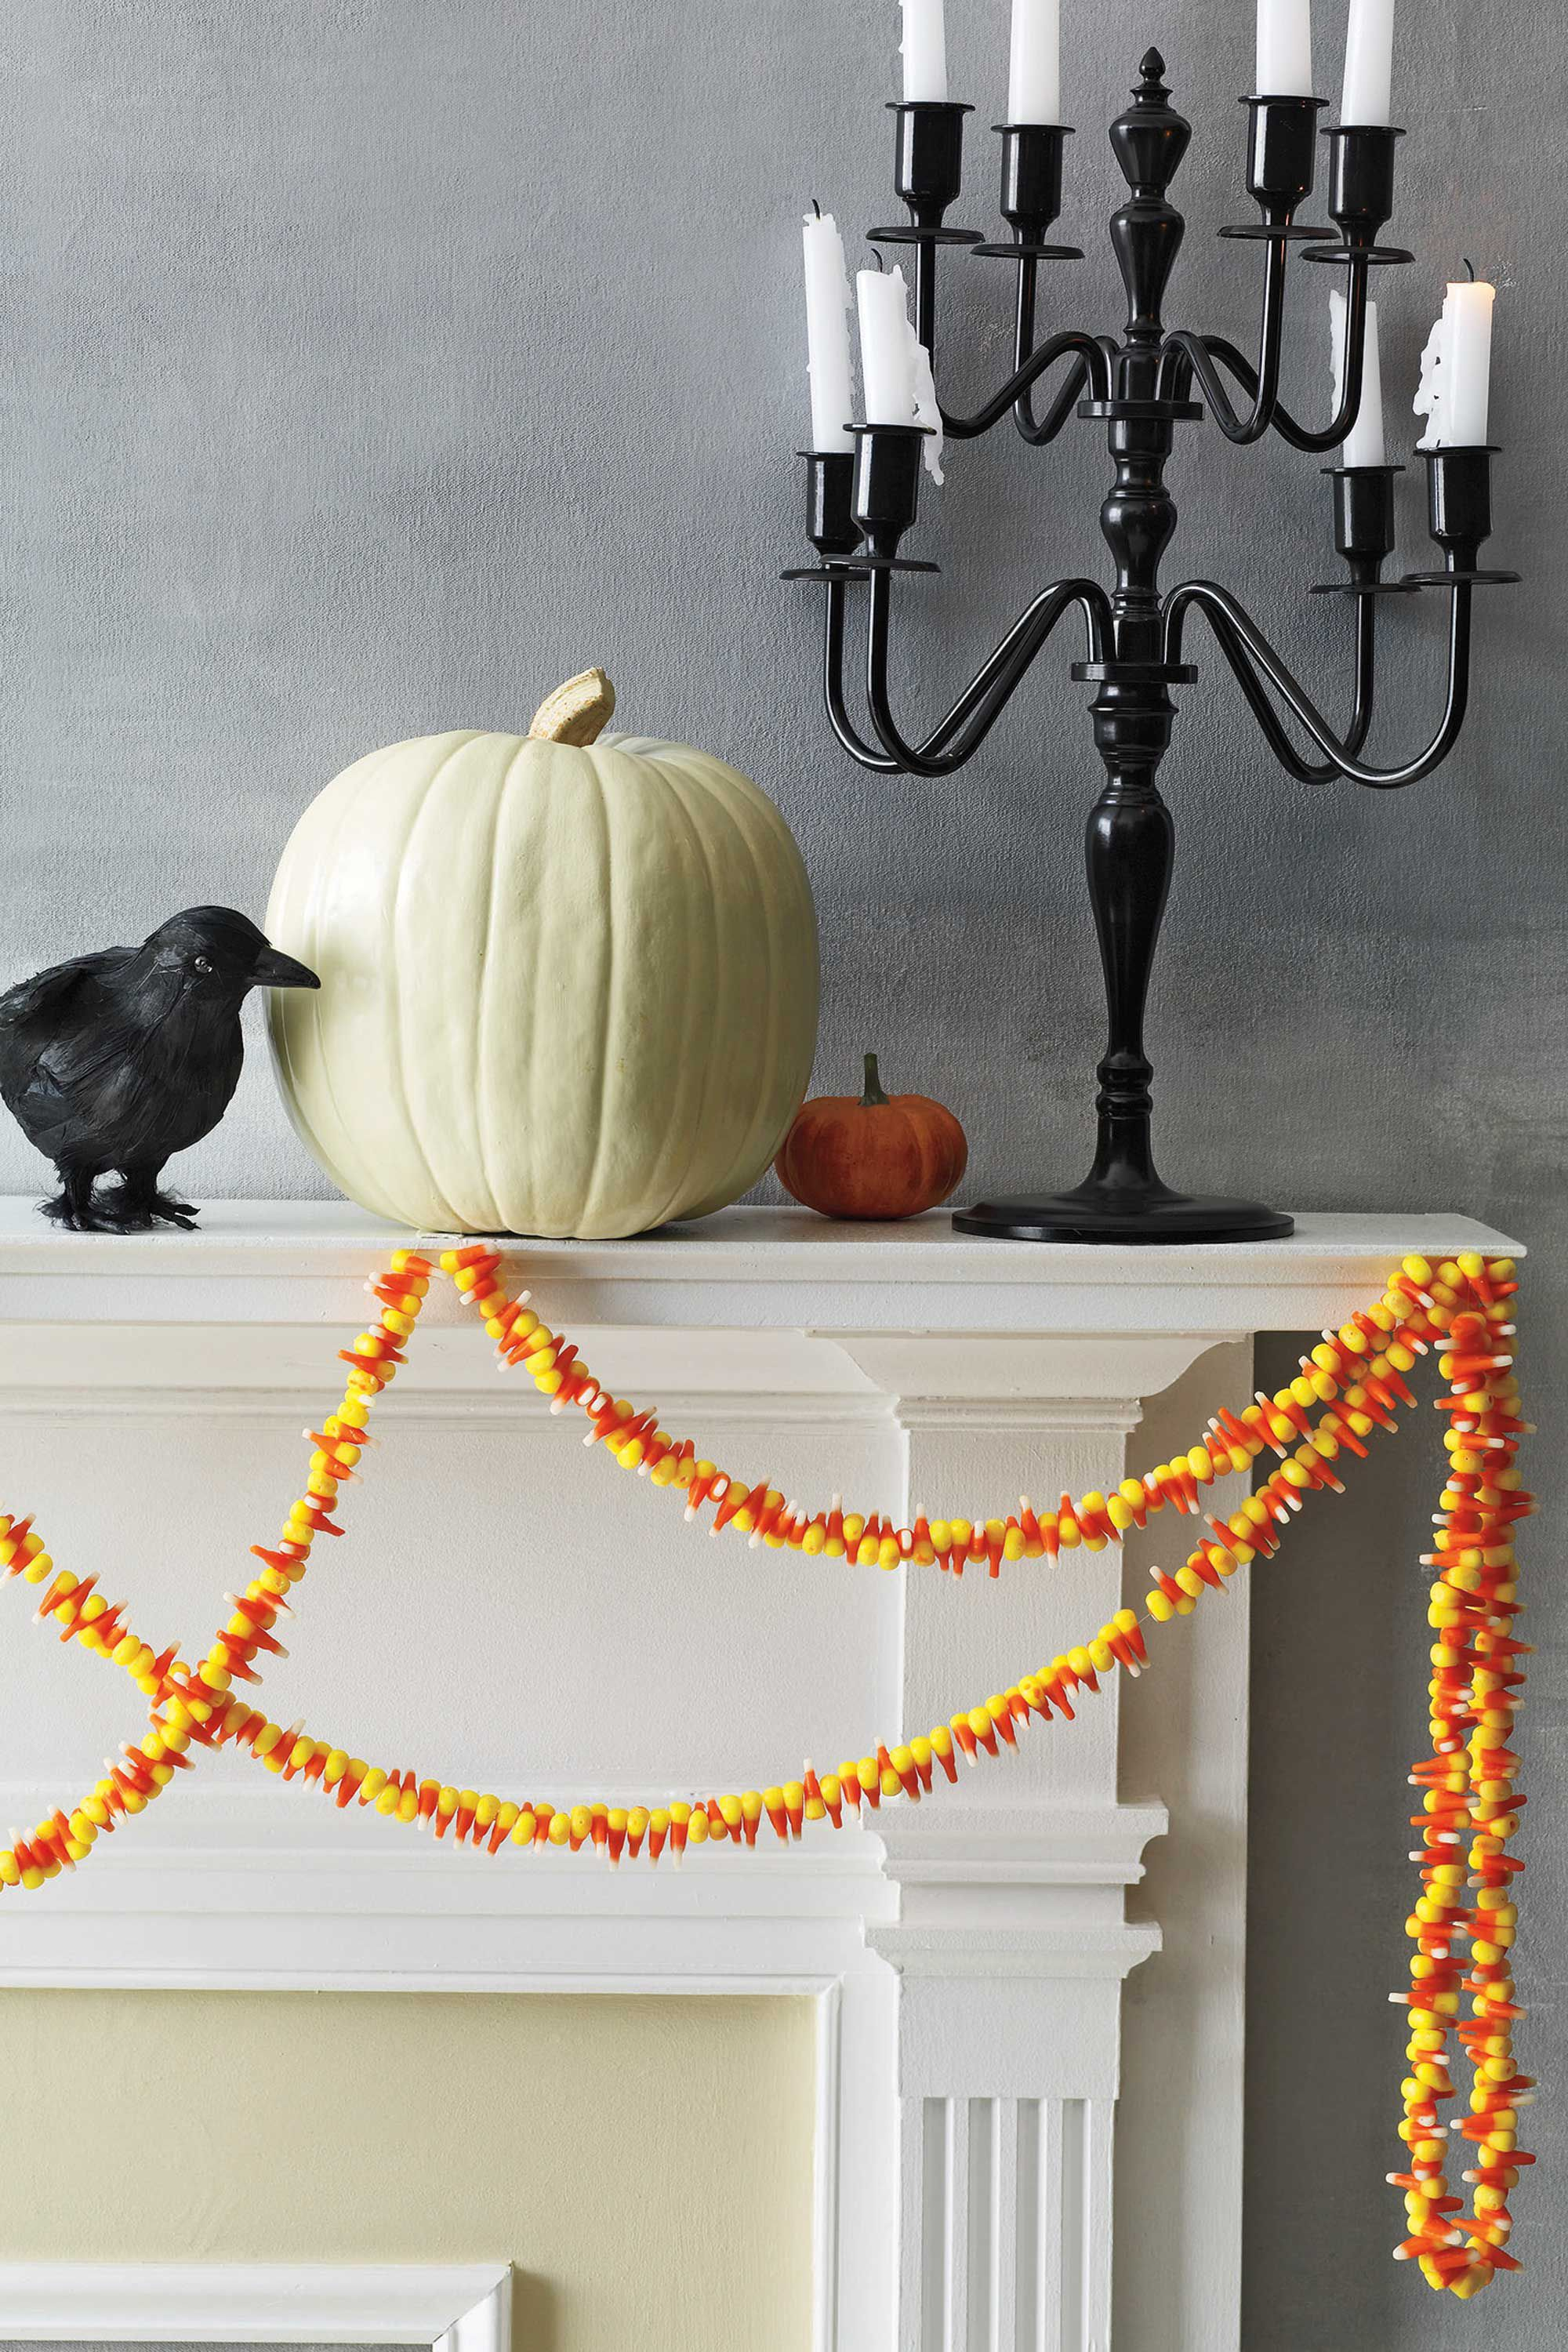 48 Easy DIY Halloween Decorations - Homemade Do It Yourself